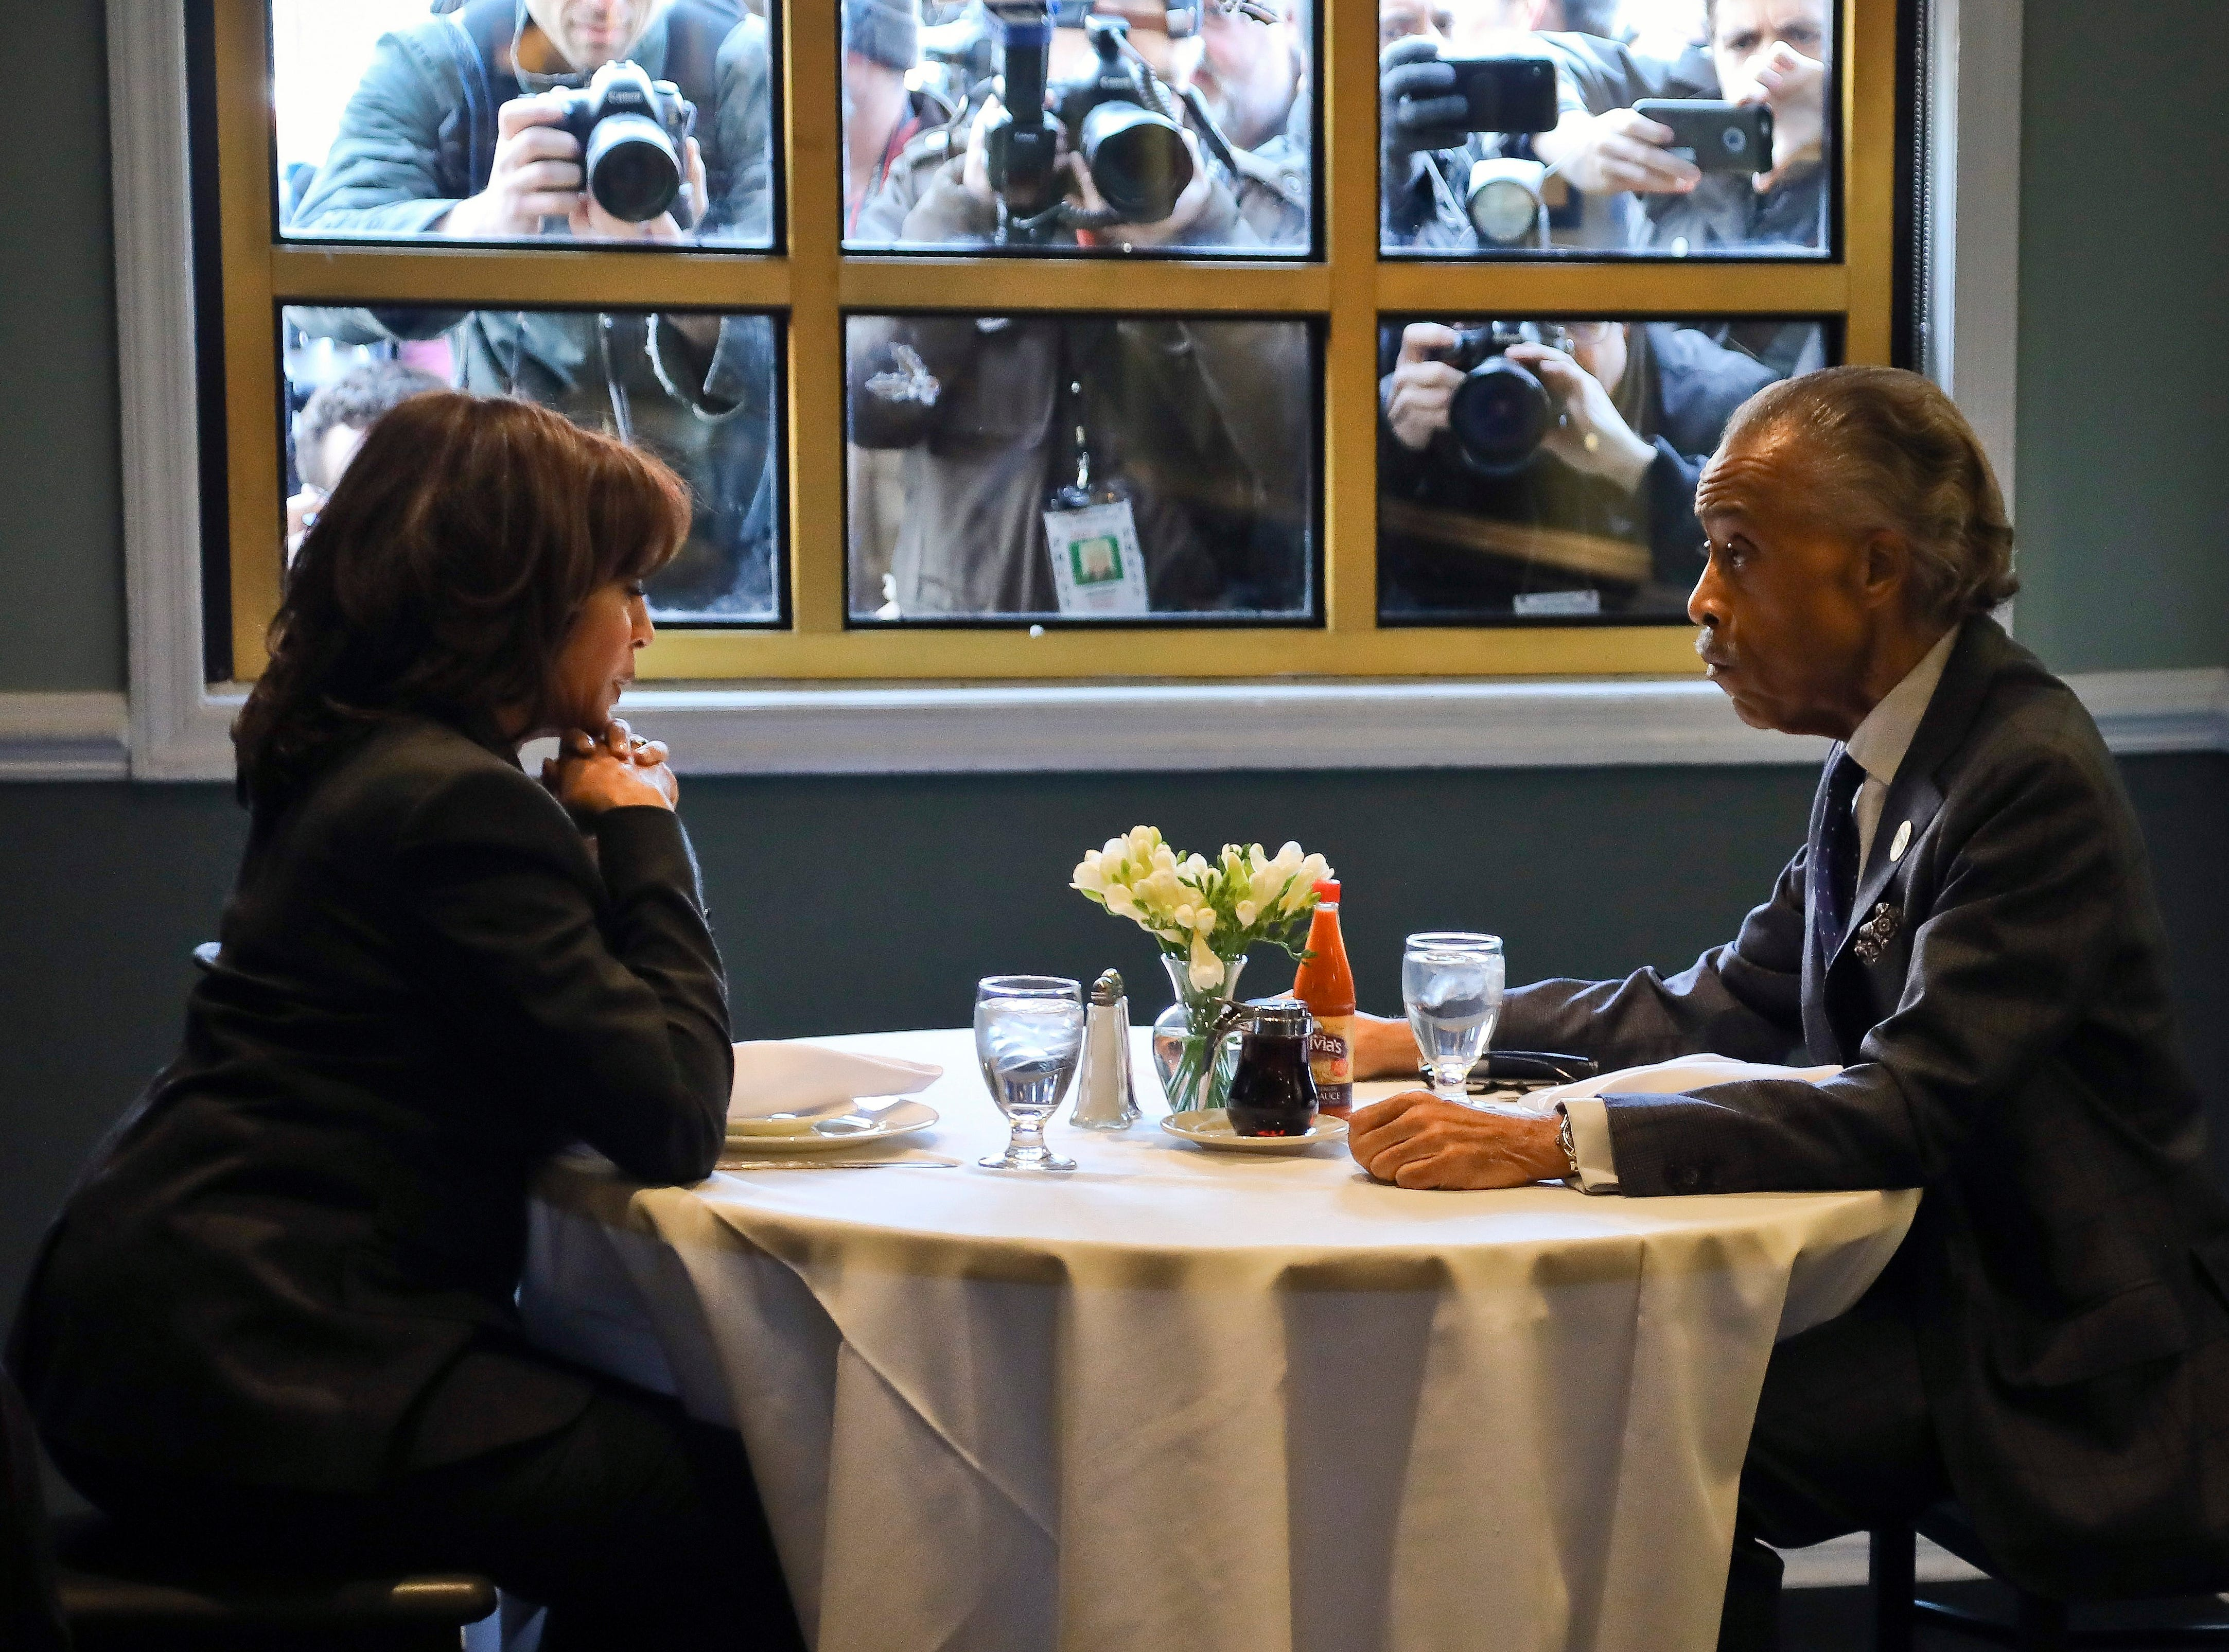 Democratic presidential candidate Sen. Kamala Harris, D-Calif., left, lunches with civil rights leader Rev. Al Sharpton, president of the National Action Network, at Sylvia's Restaurant in the Harlem neighborhood of New York, Thursday, Feb. 21, 2019.